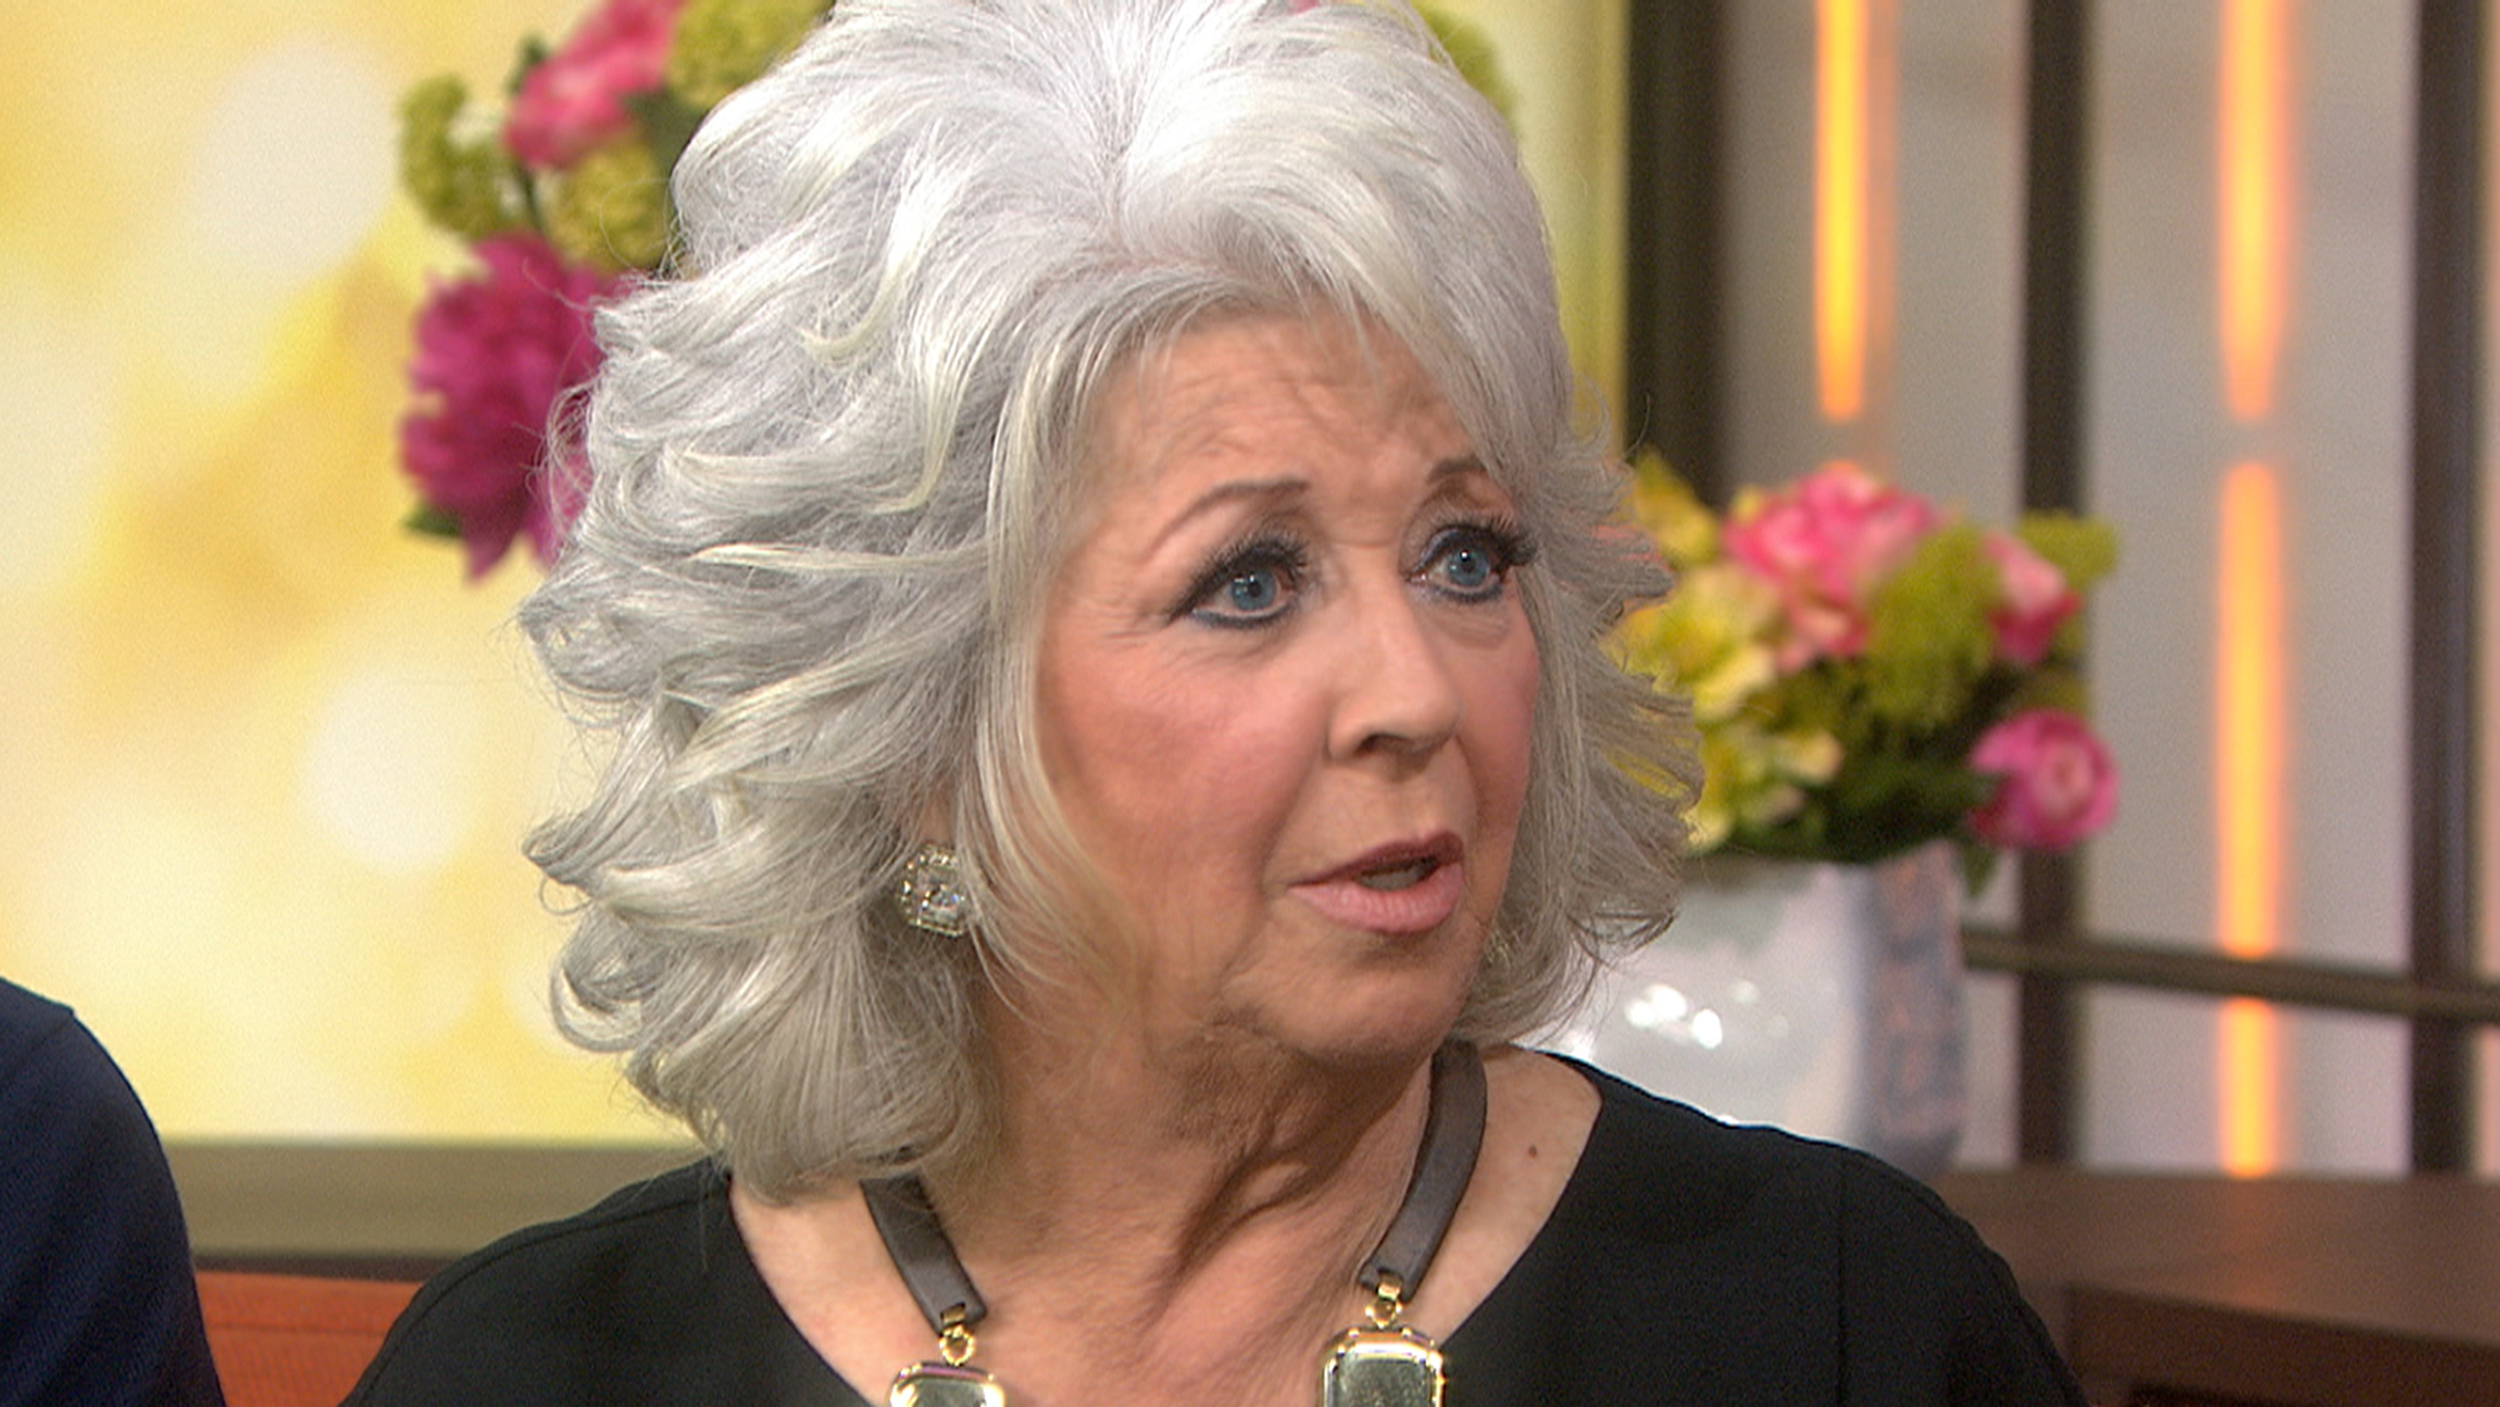 paula deen Photo: dave kotinsky/getty images the flamboyant television food personality and enthusiastic pusher of an inane new line of pointless butter spreads allegedly admitted to telling racist jokes.